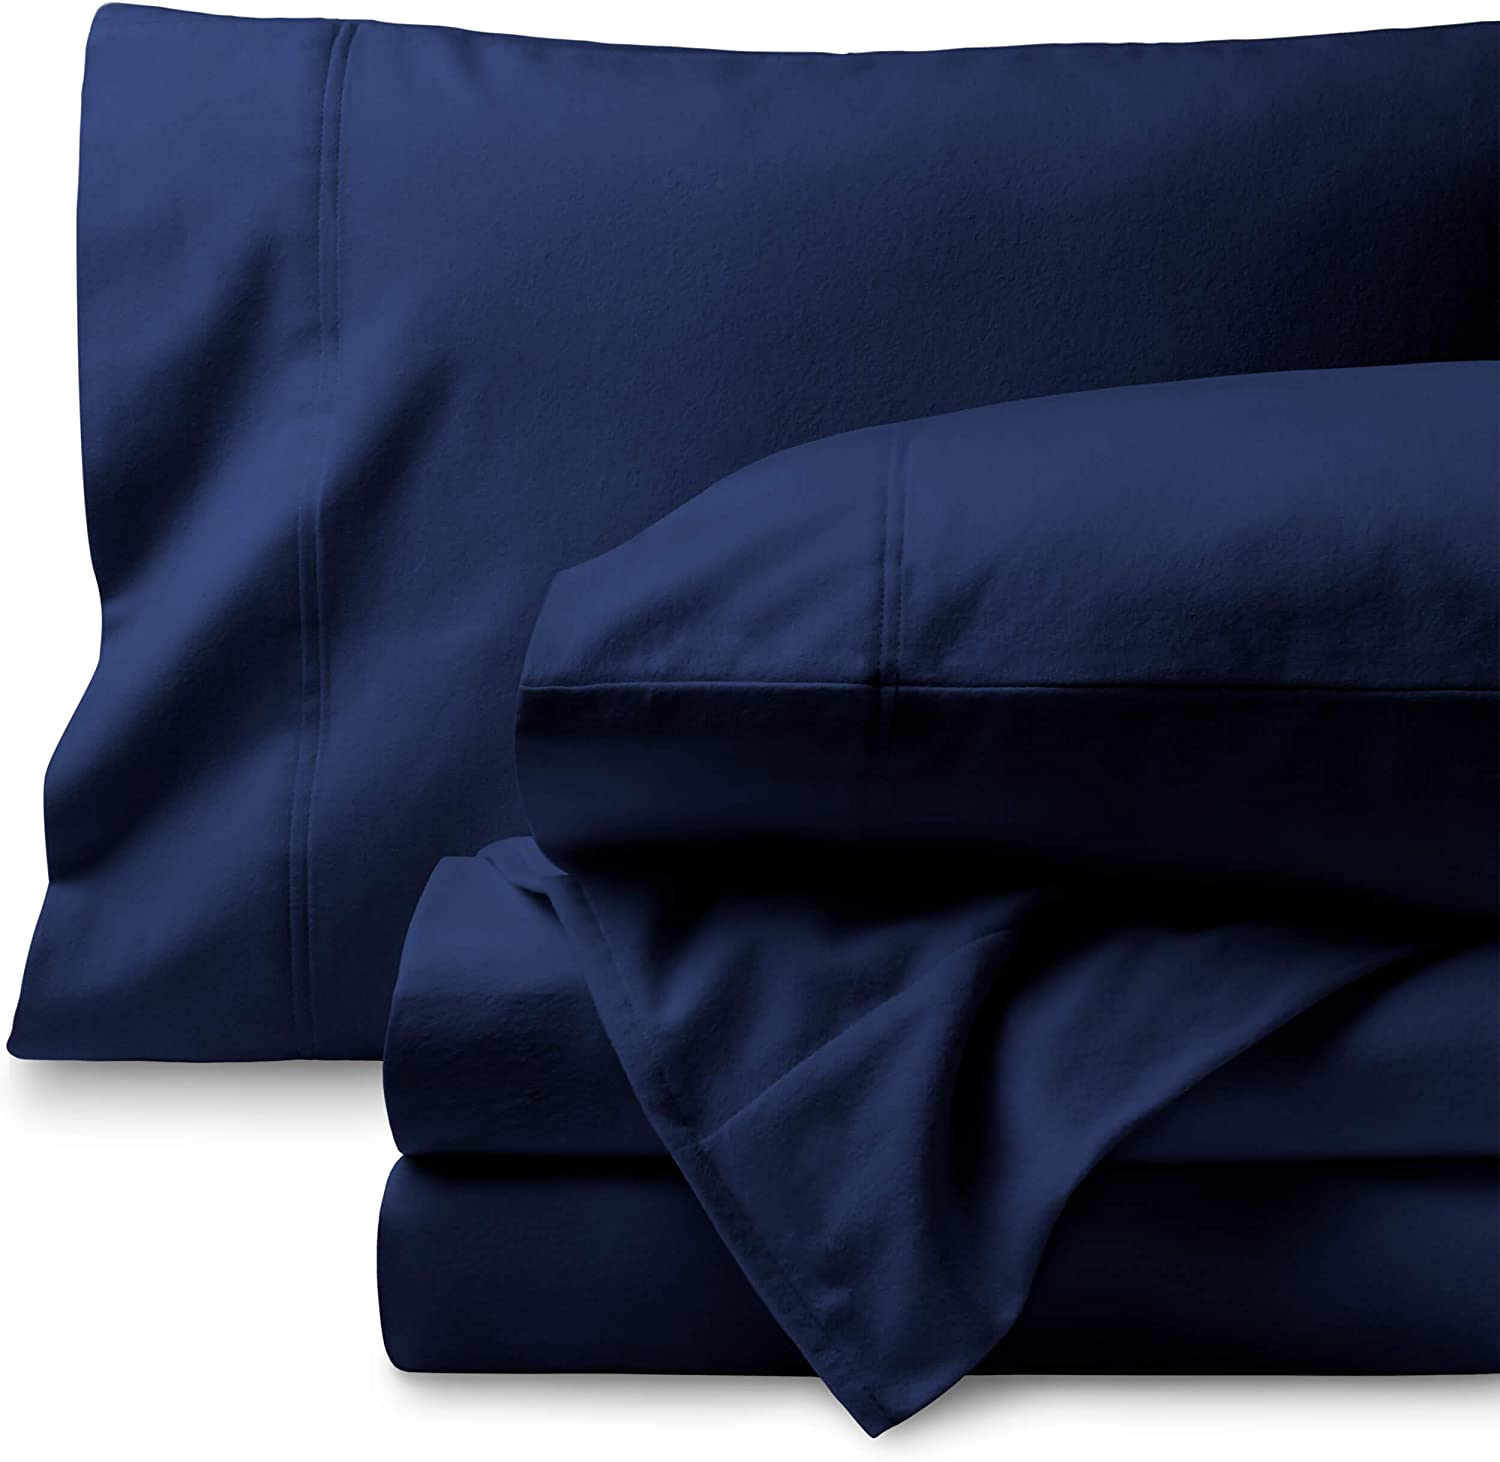 Bare Home Flannel Sheet Set 100% Cotton, Velvety Soft Heavyweight - Double Brushed Flannel - Deep Pocket (Twin XL, Dark Blue)